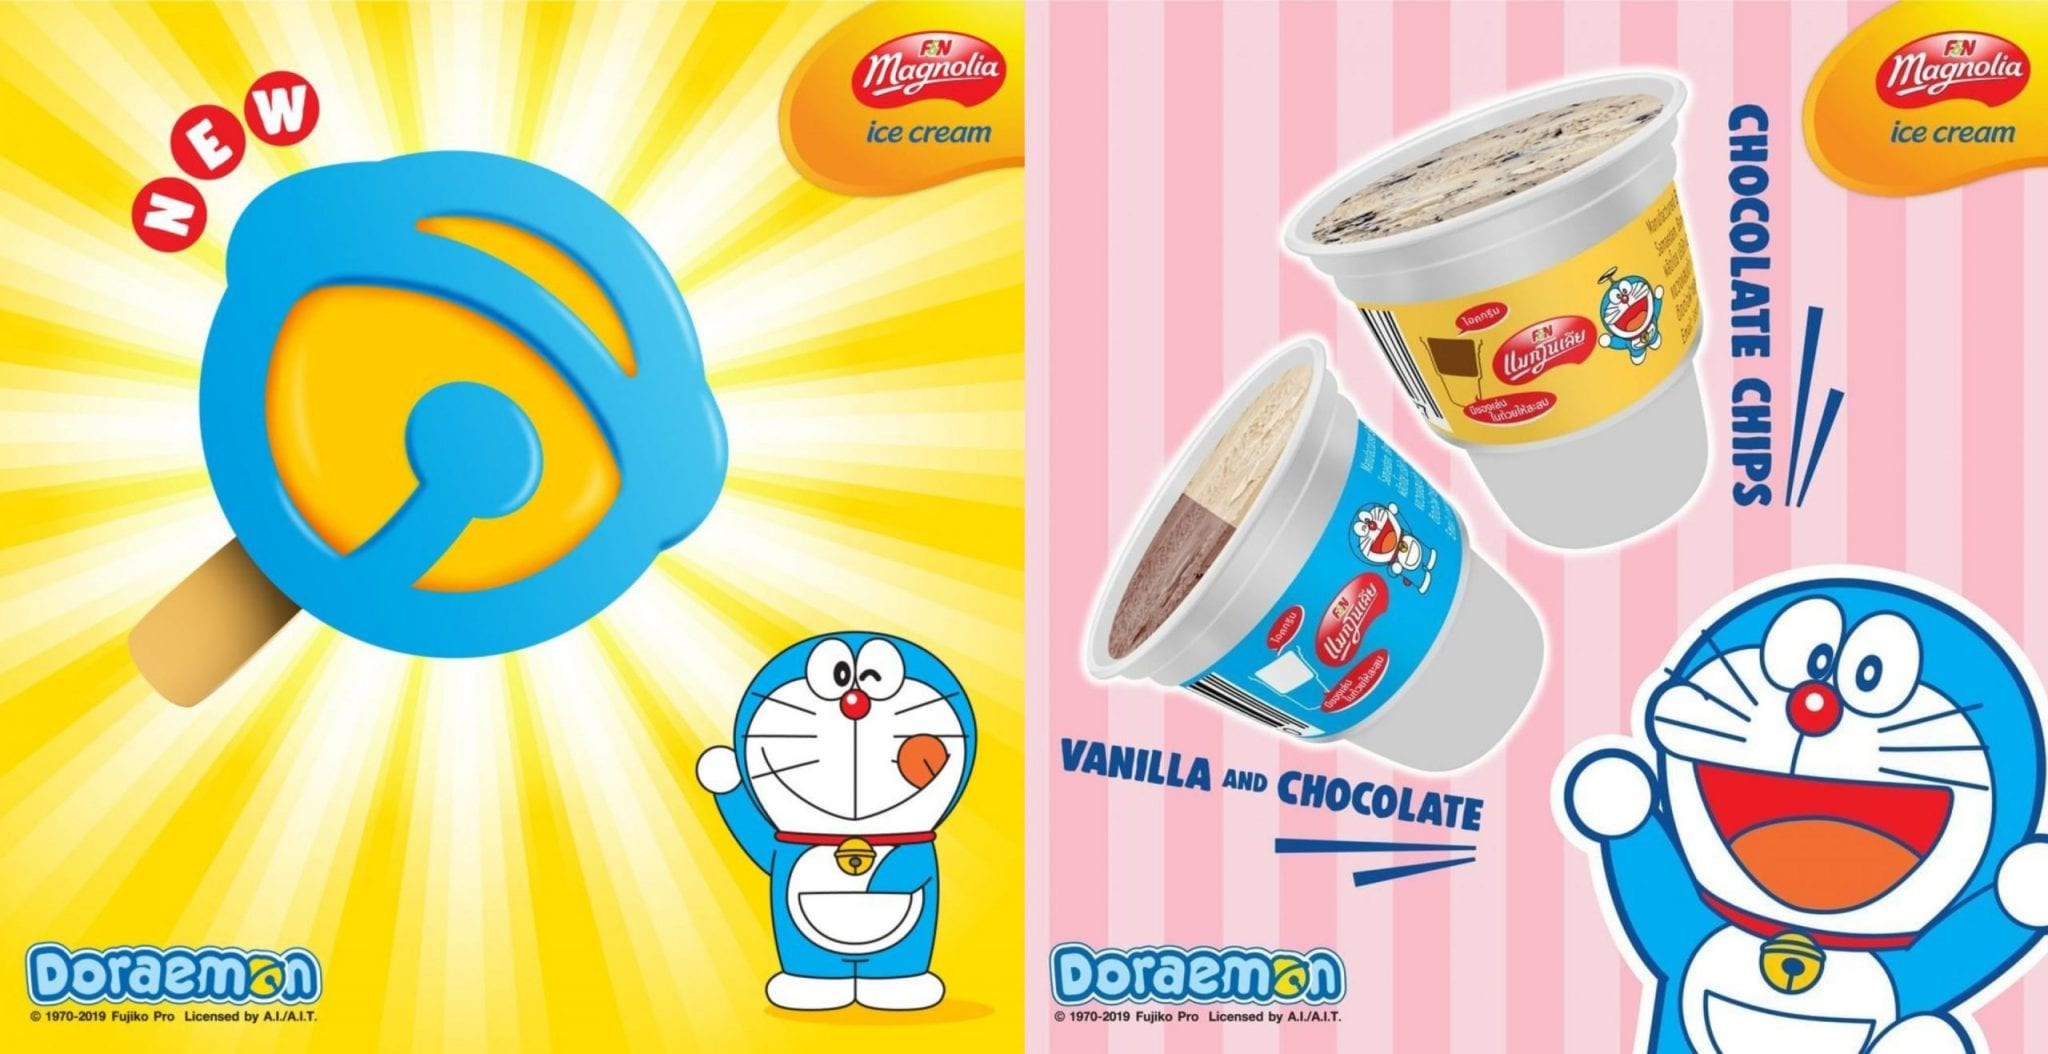 Doraemon ice cream